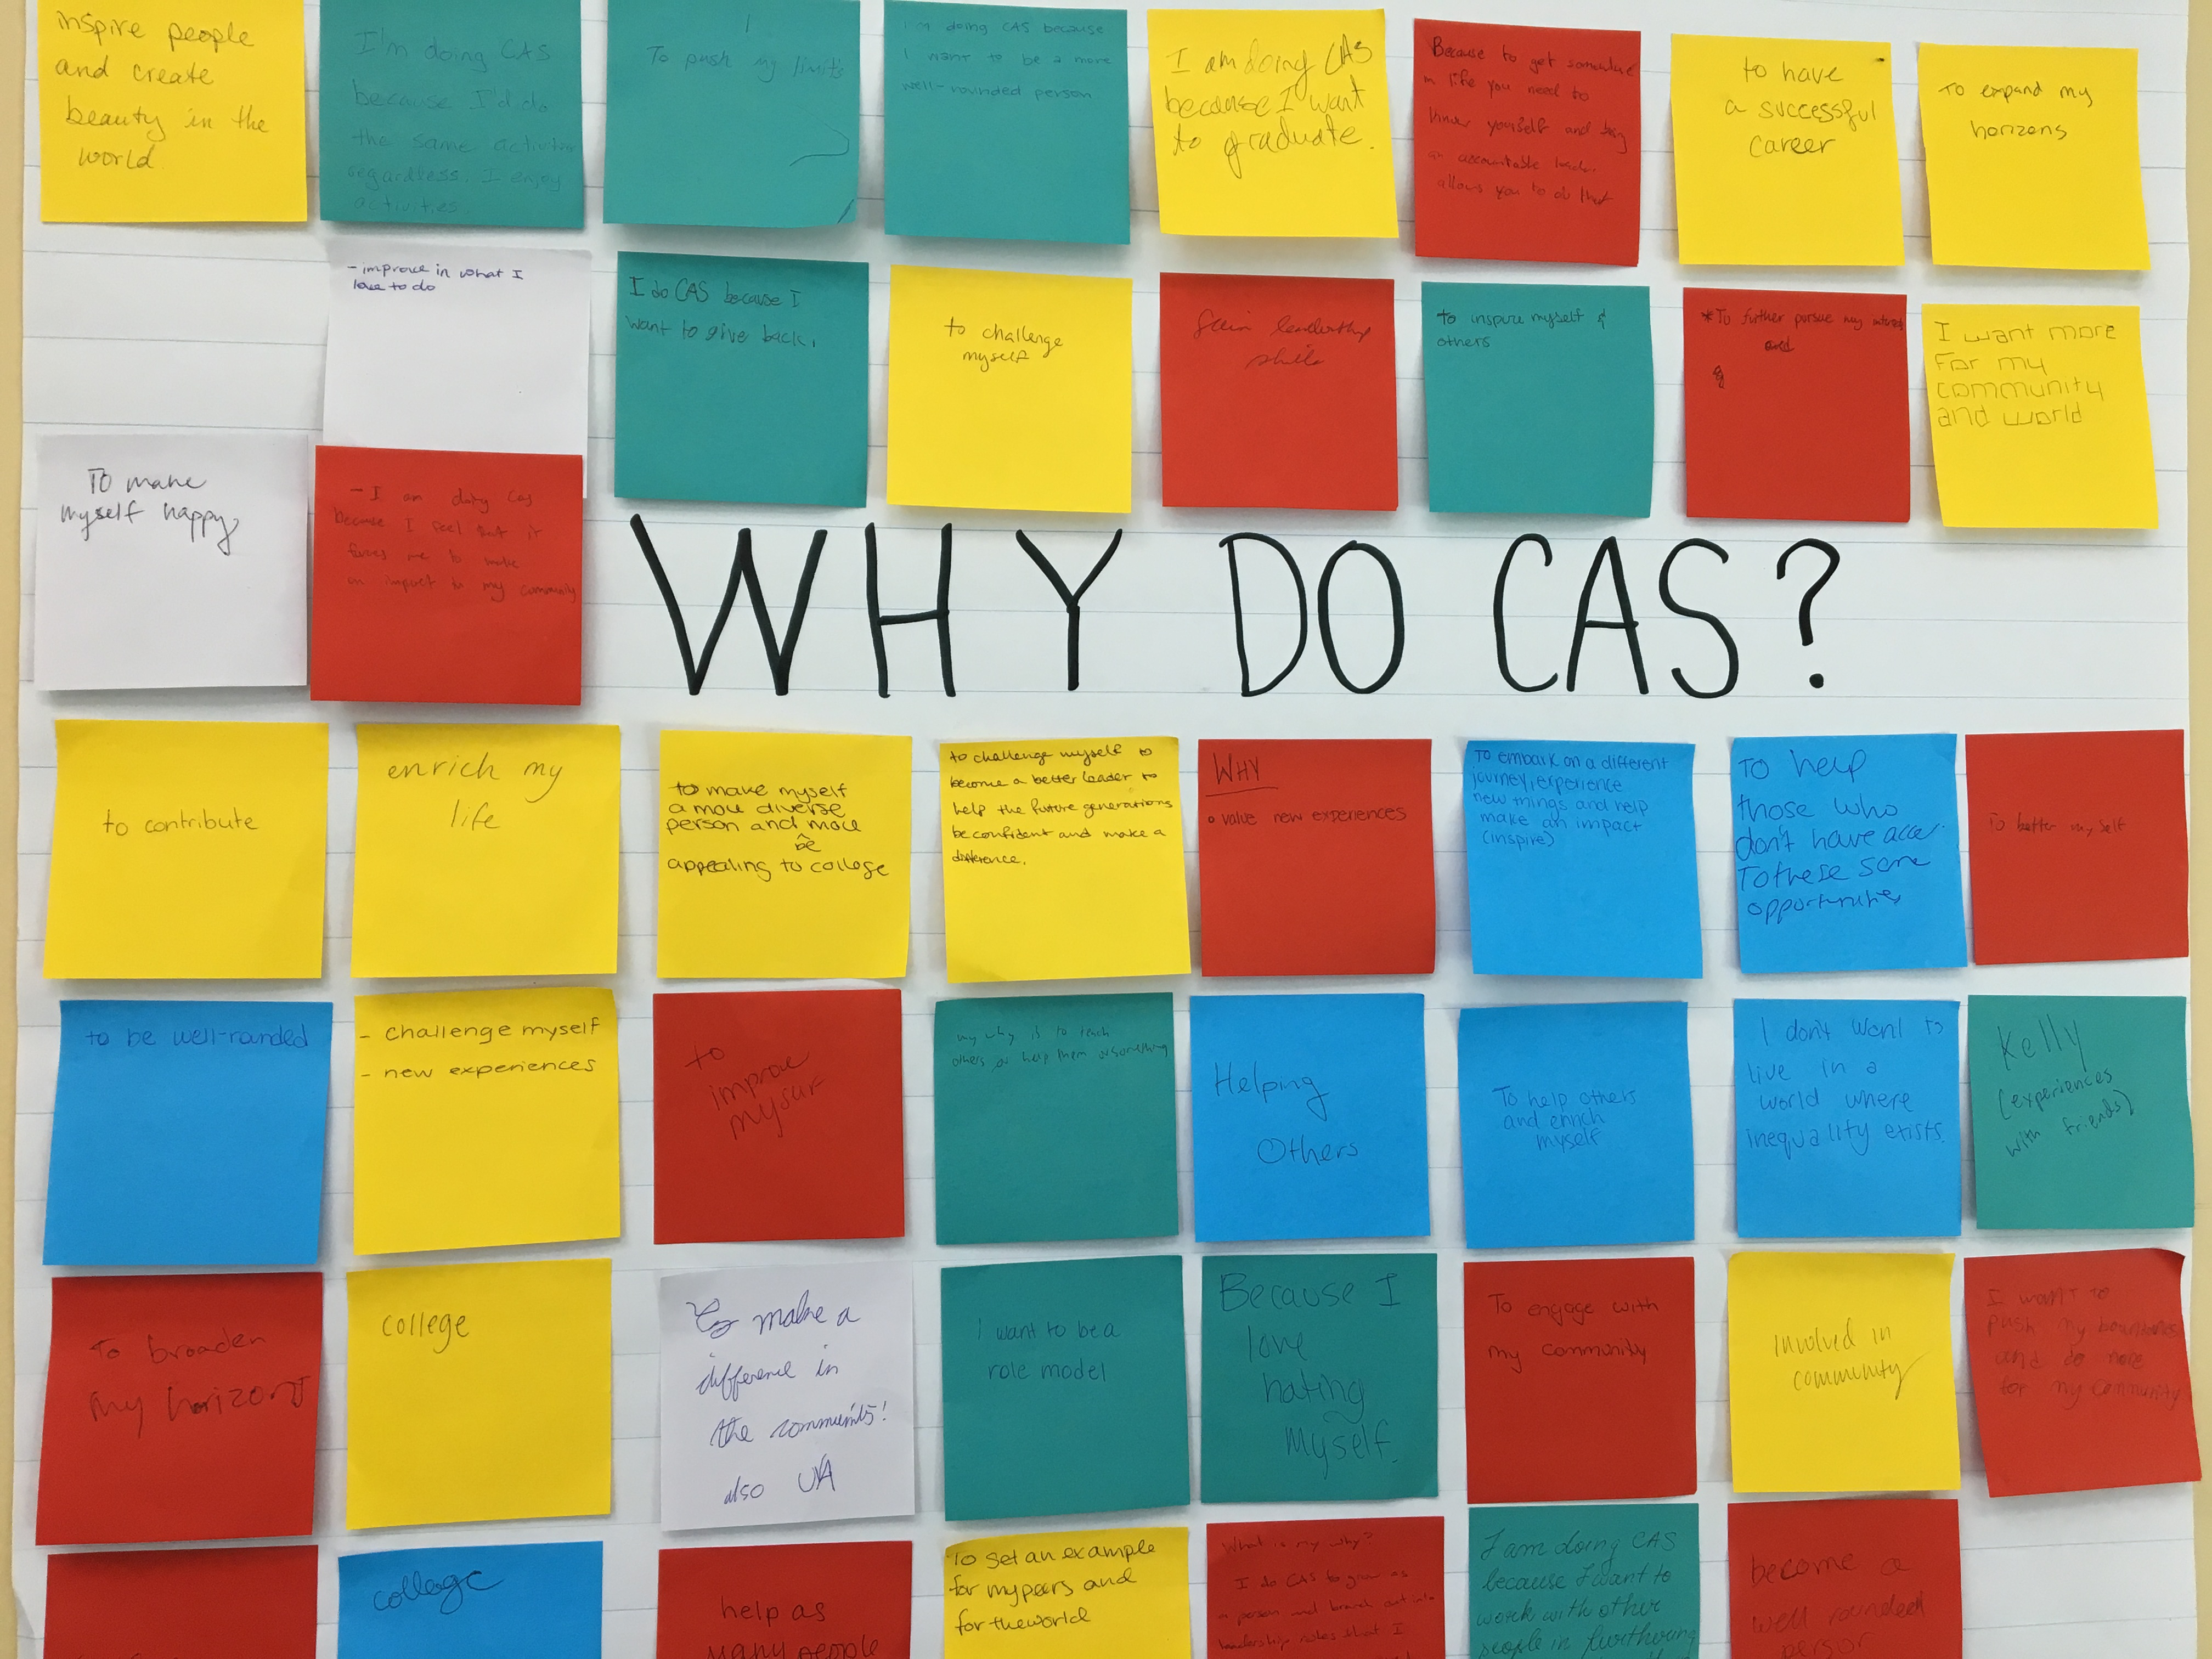 IB CAS Fair will be held on March 21st (7-8 pm)